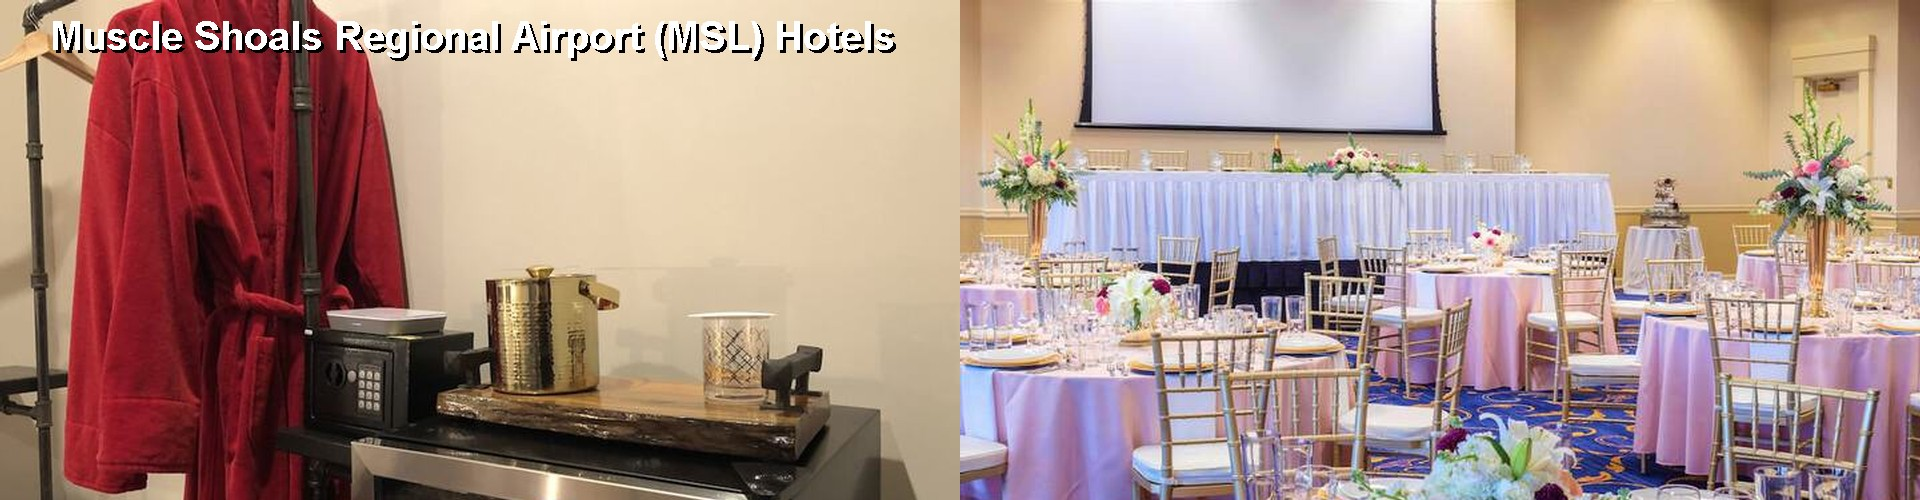 5 Best Hotels near Muscle Shoals Regional Airport (MSL)